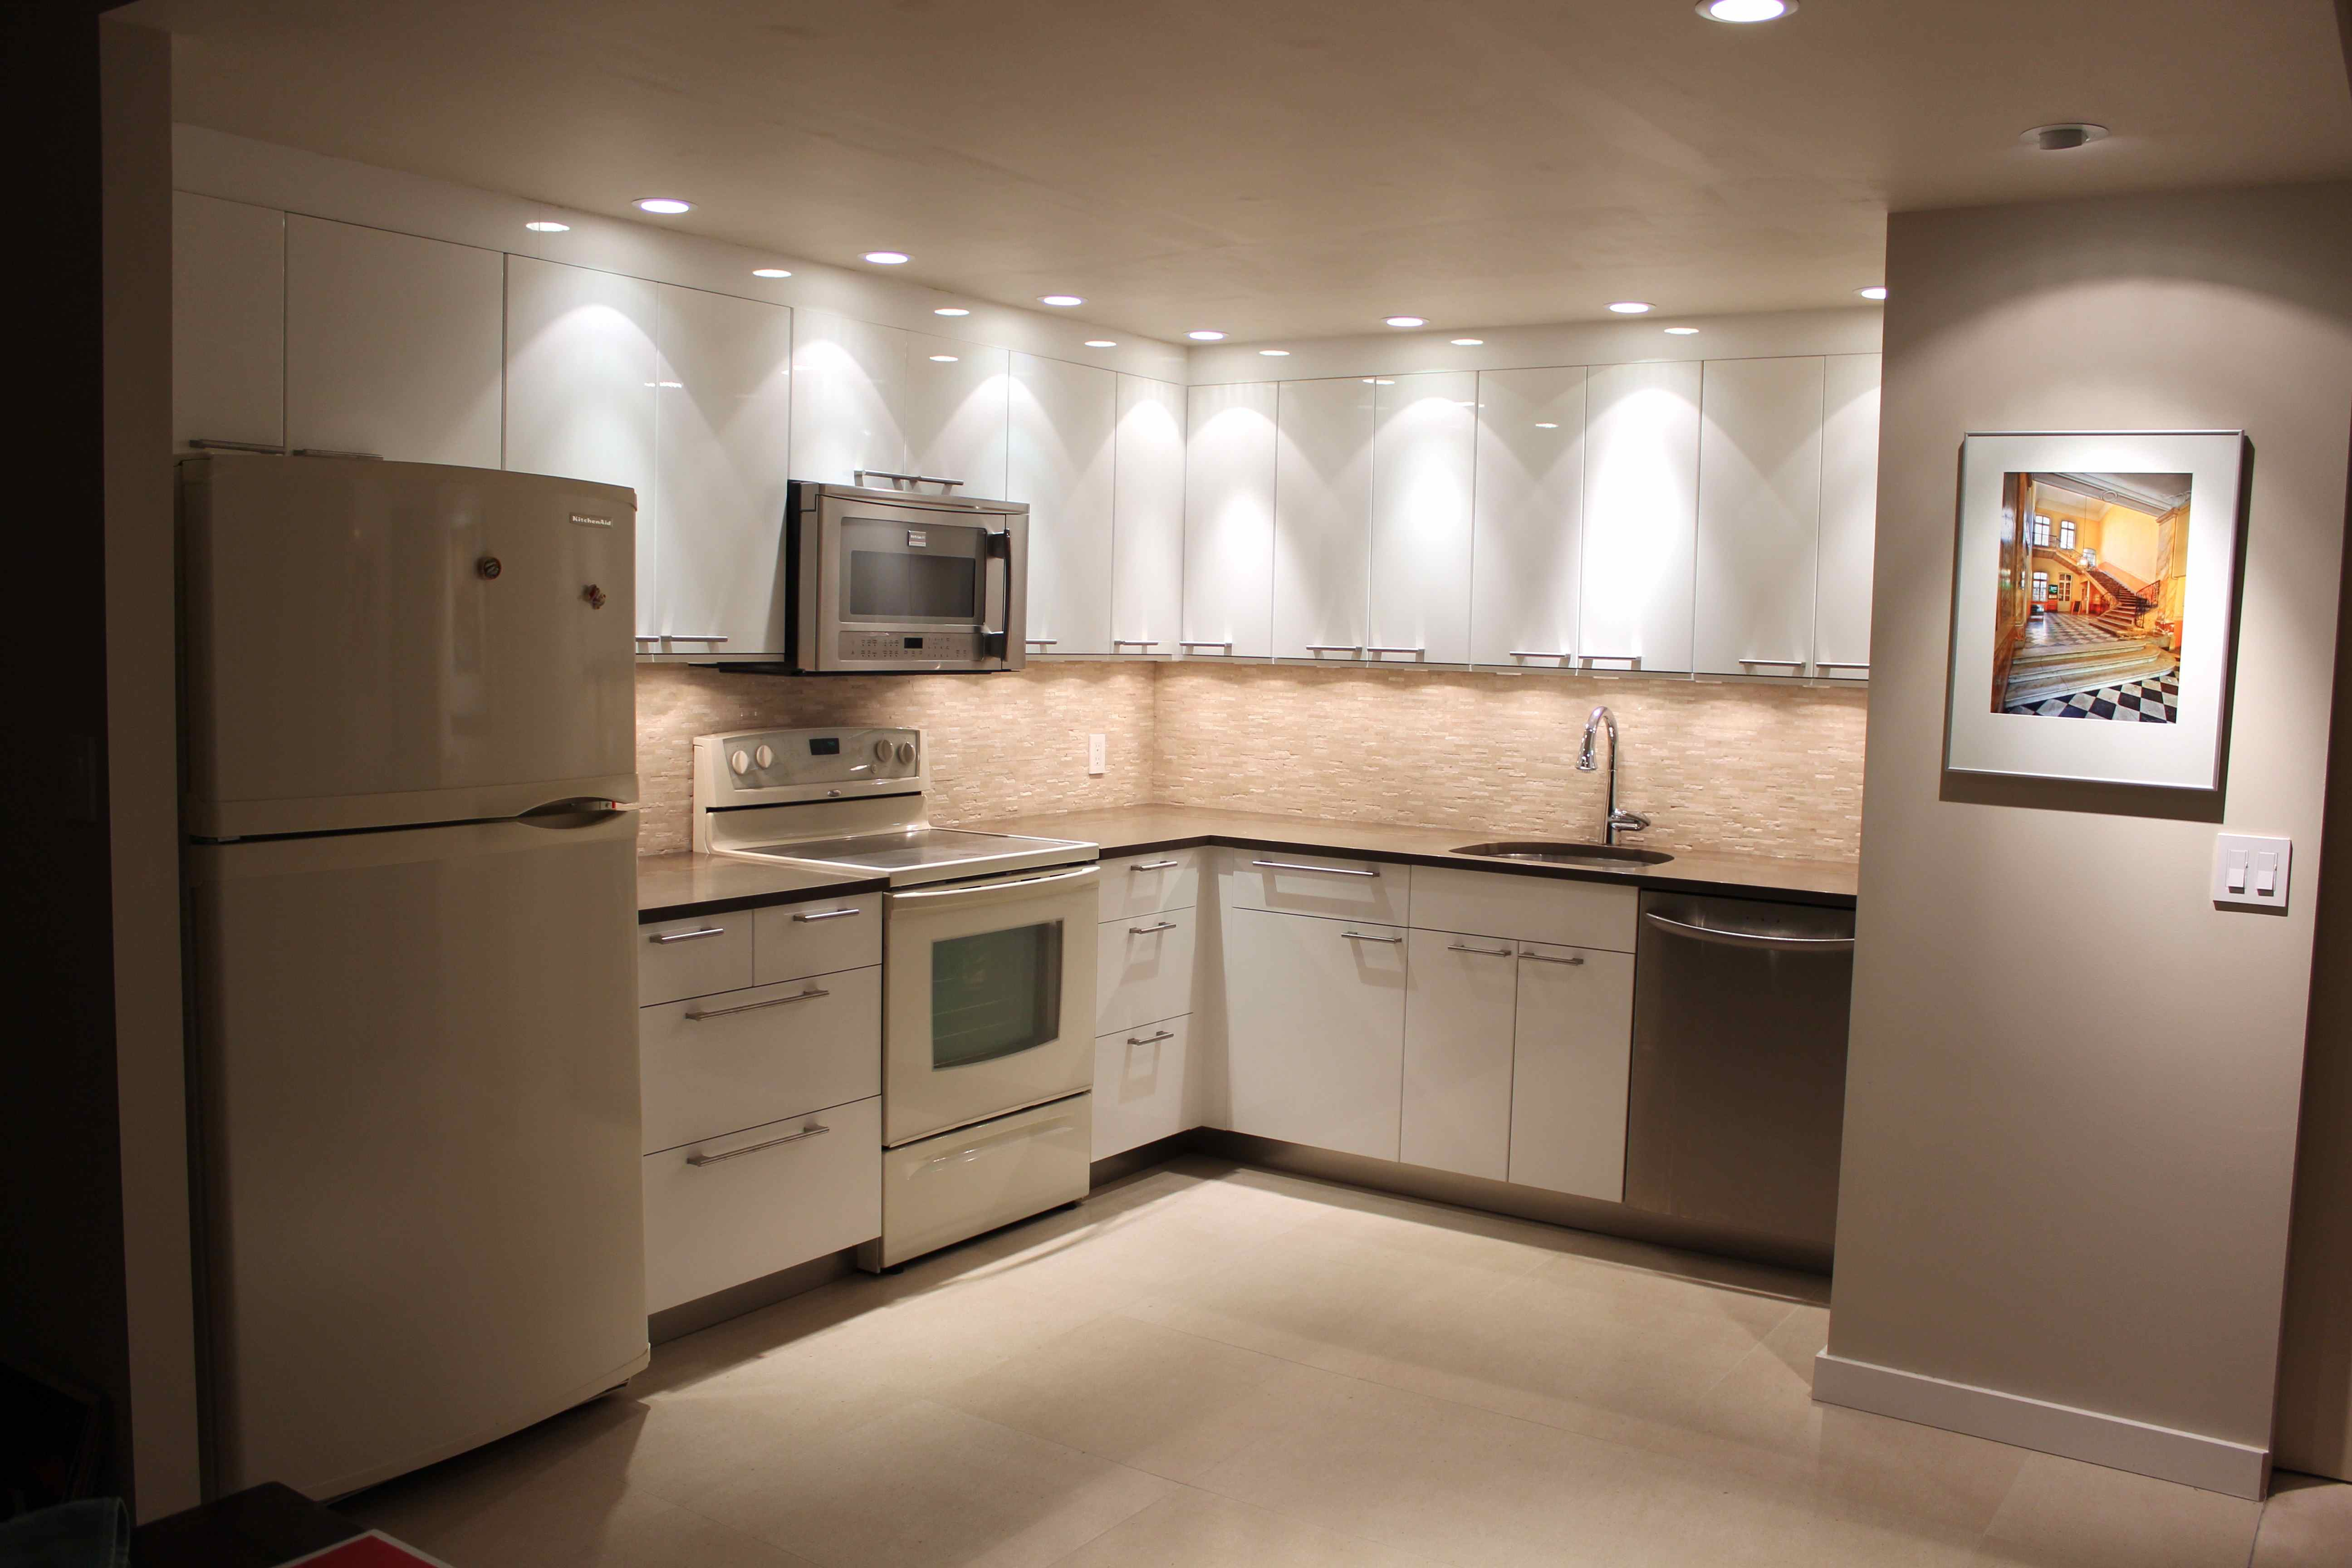 Home Improvement by SKG Renovations: A condo kitchen transformation